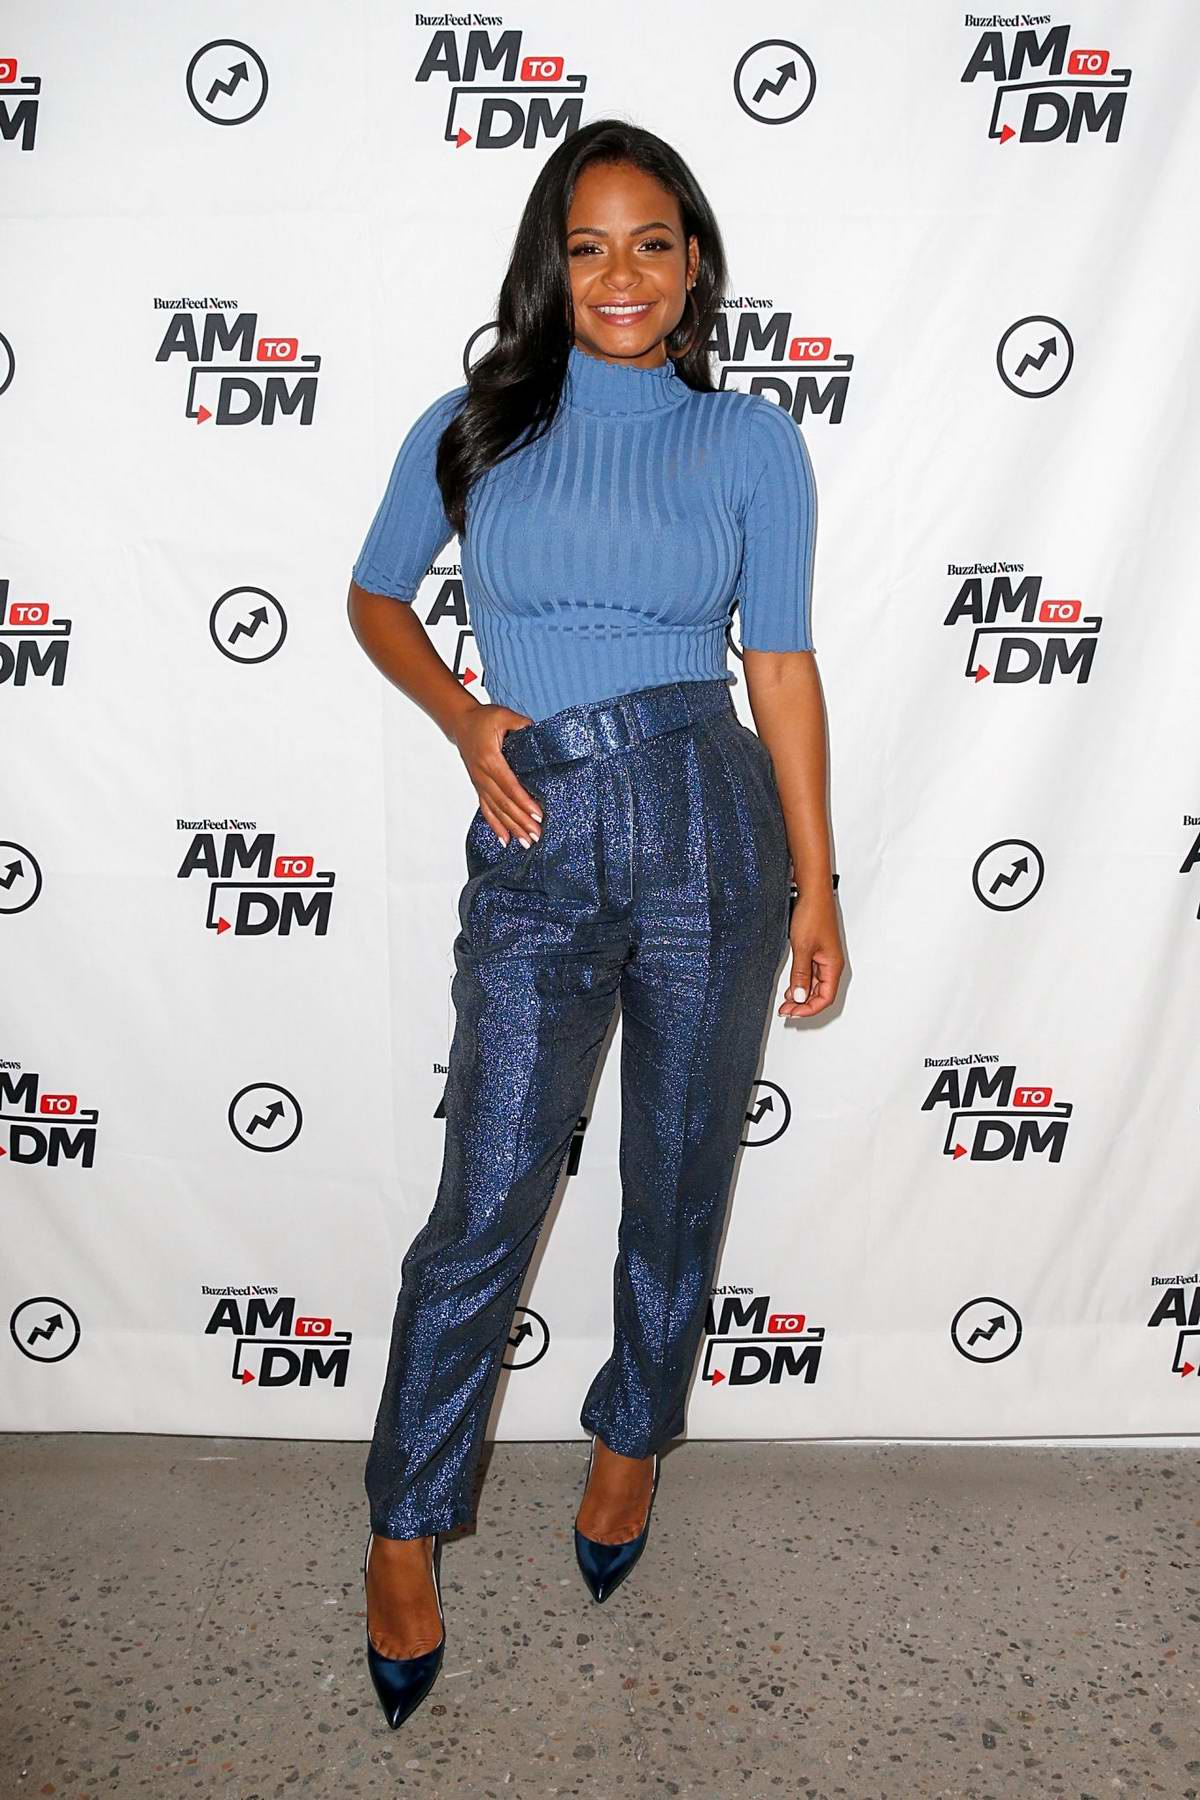 Christina Milian visits BuzzFeed's 'AM To DM' in New York City